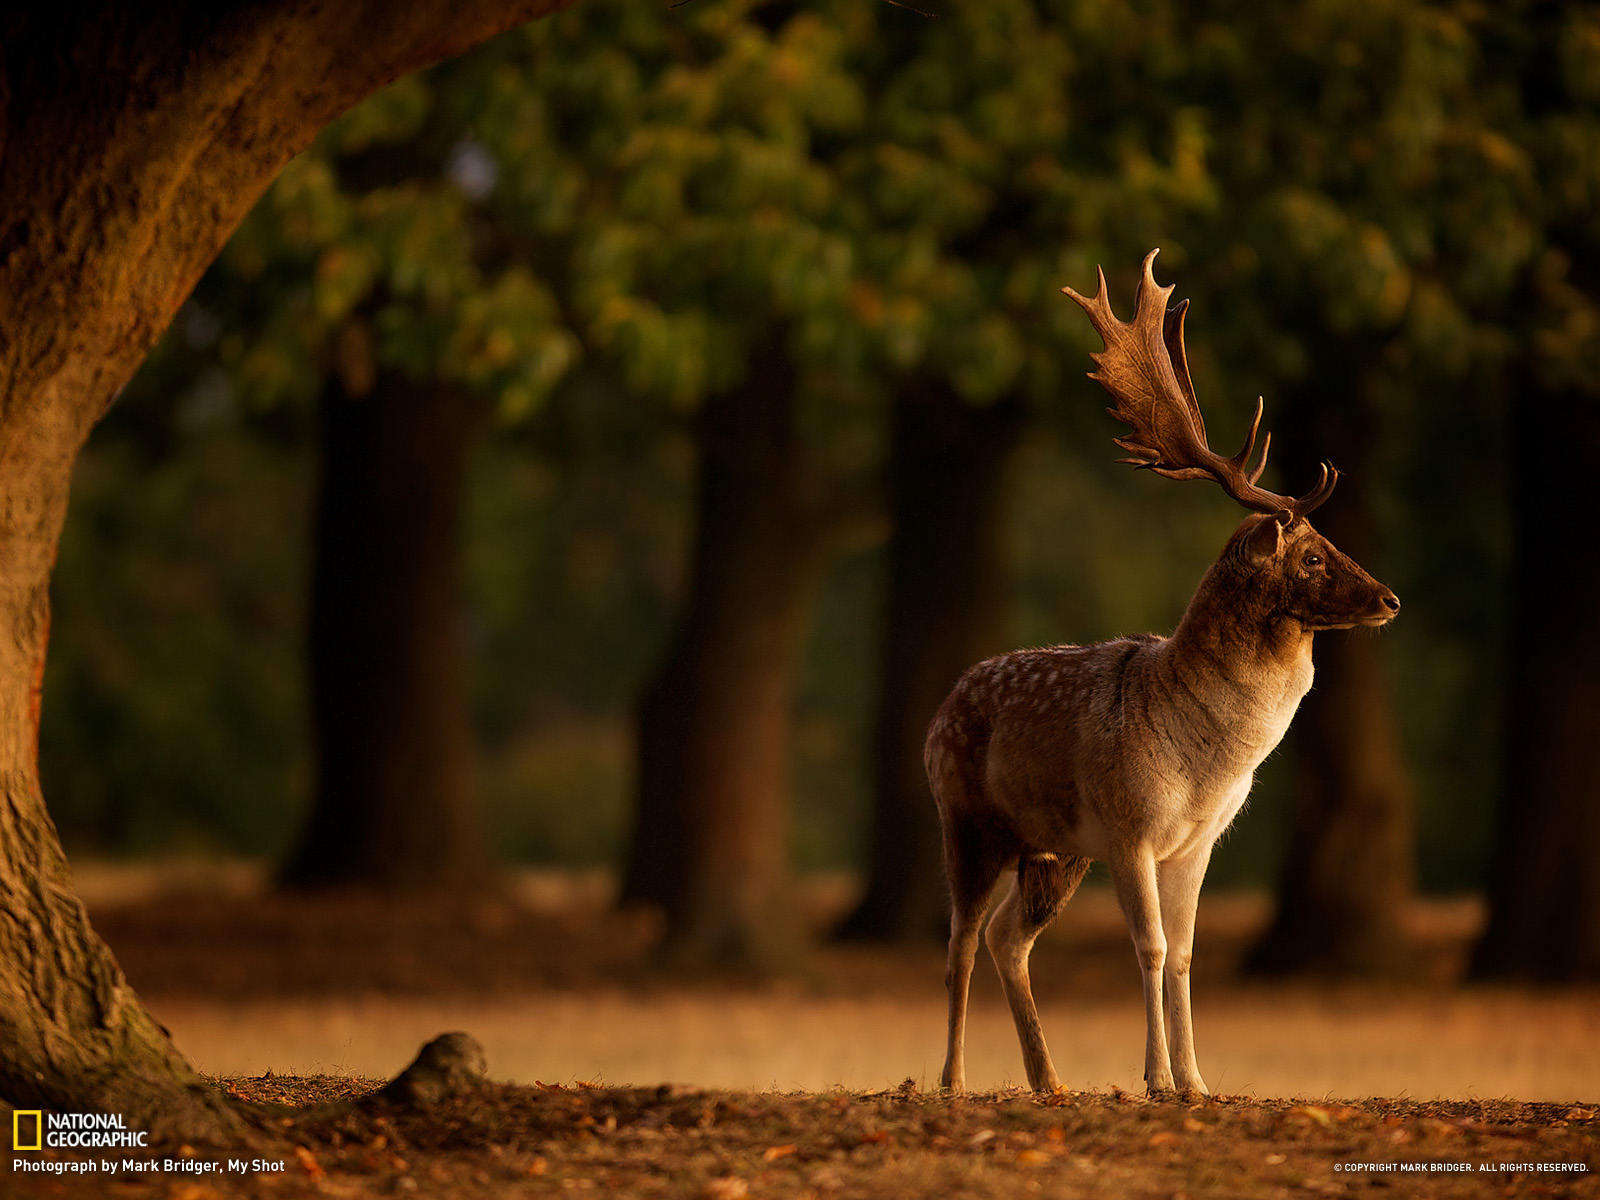 Best Ideas About Deer Wallpaper On Pinterest Cute Backgrounds National Geographic Nature Animals 1600x1200 Wallpaper Teahub Io